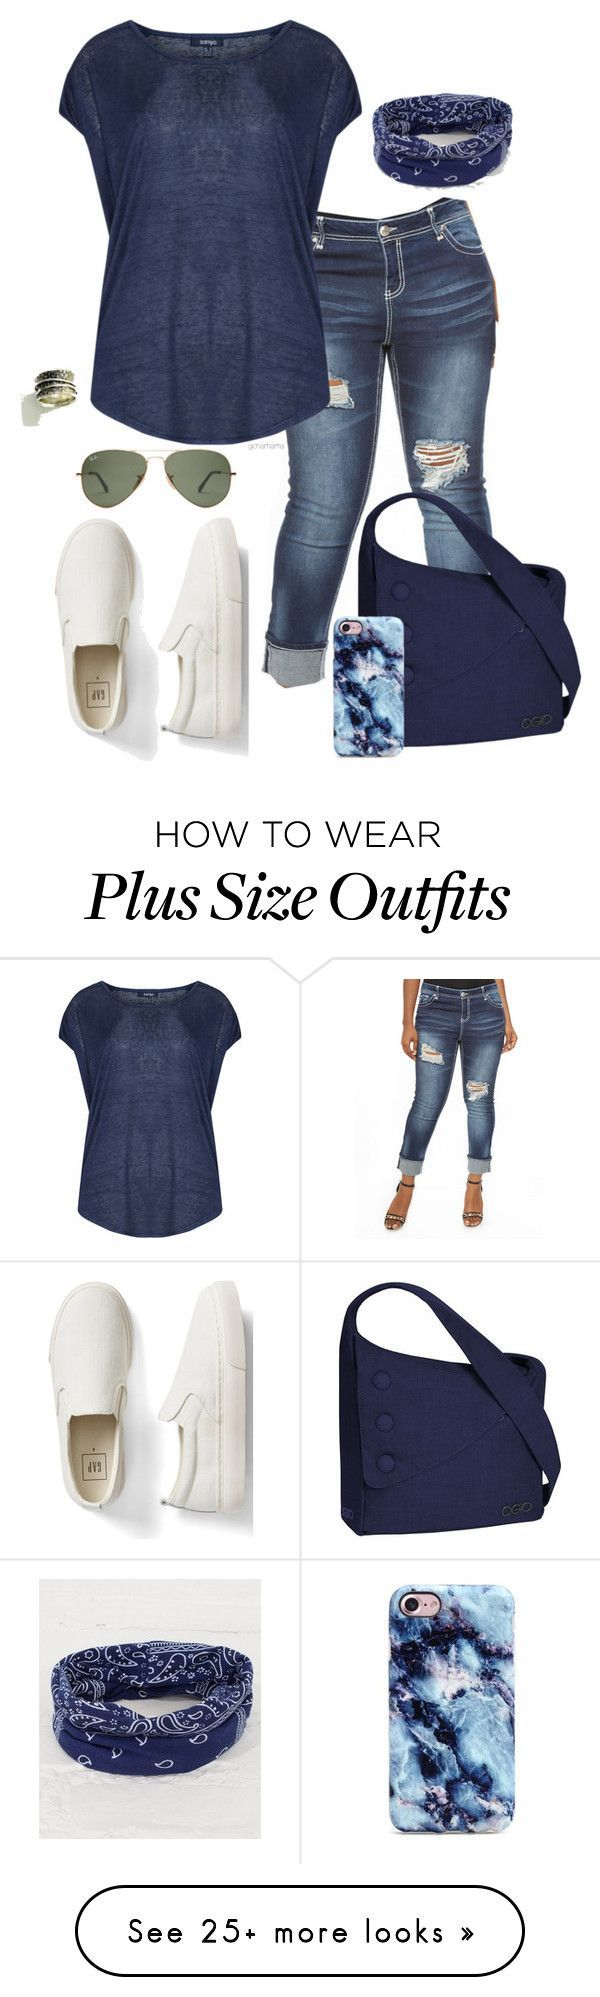 """Throw your hair up in a bun- plus size"" by gchamama on Polyvore featuring Almost Famous, Samya, Gap, OGIO and BKE"